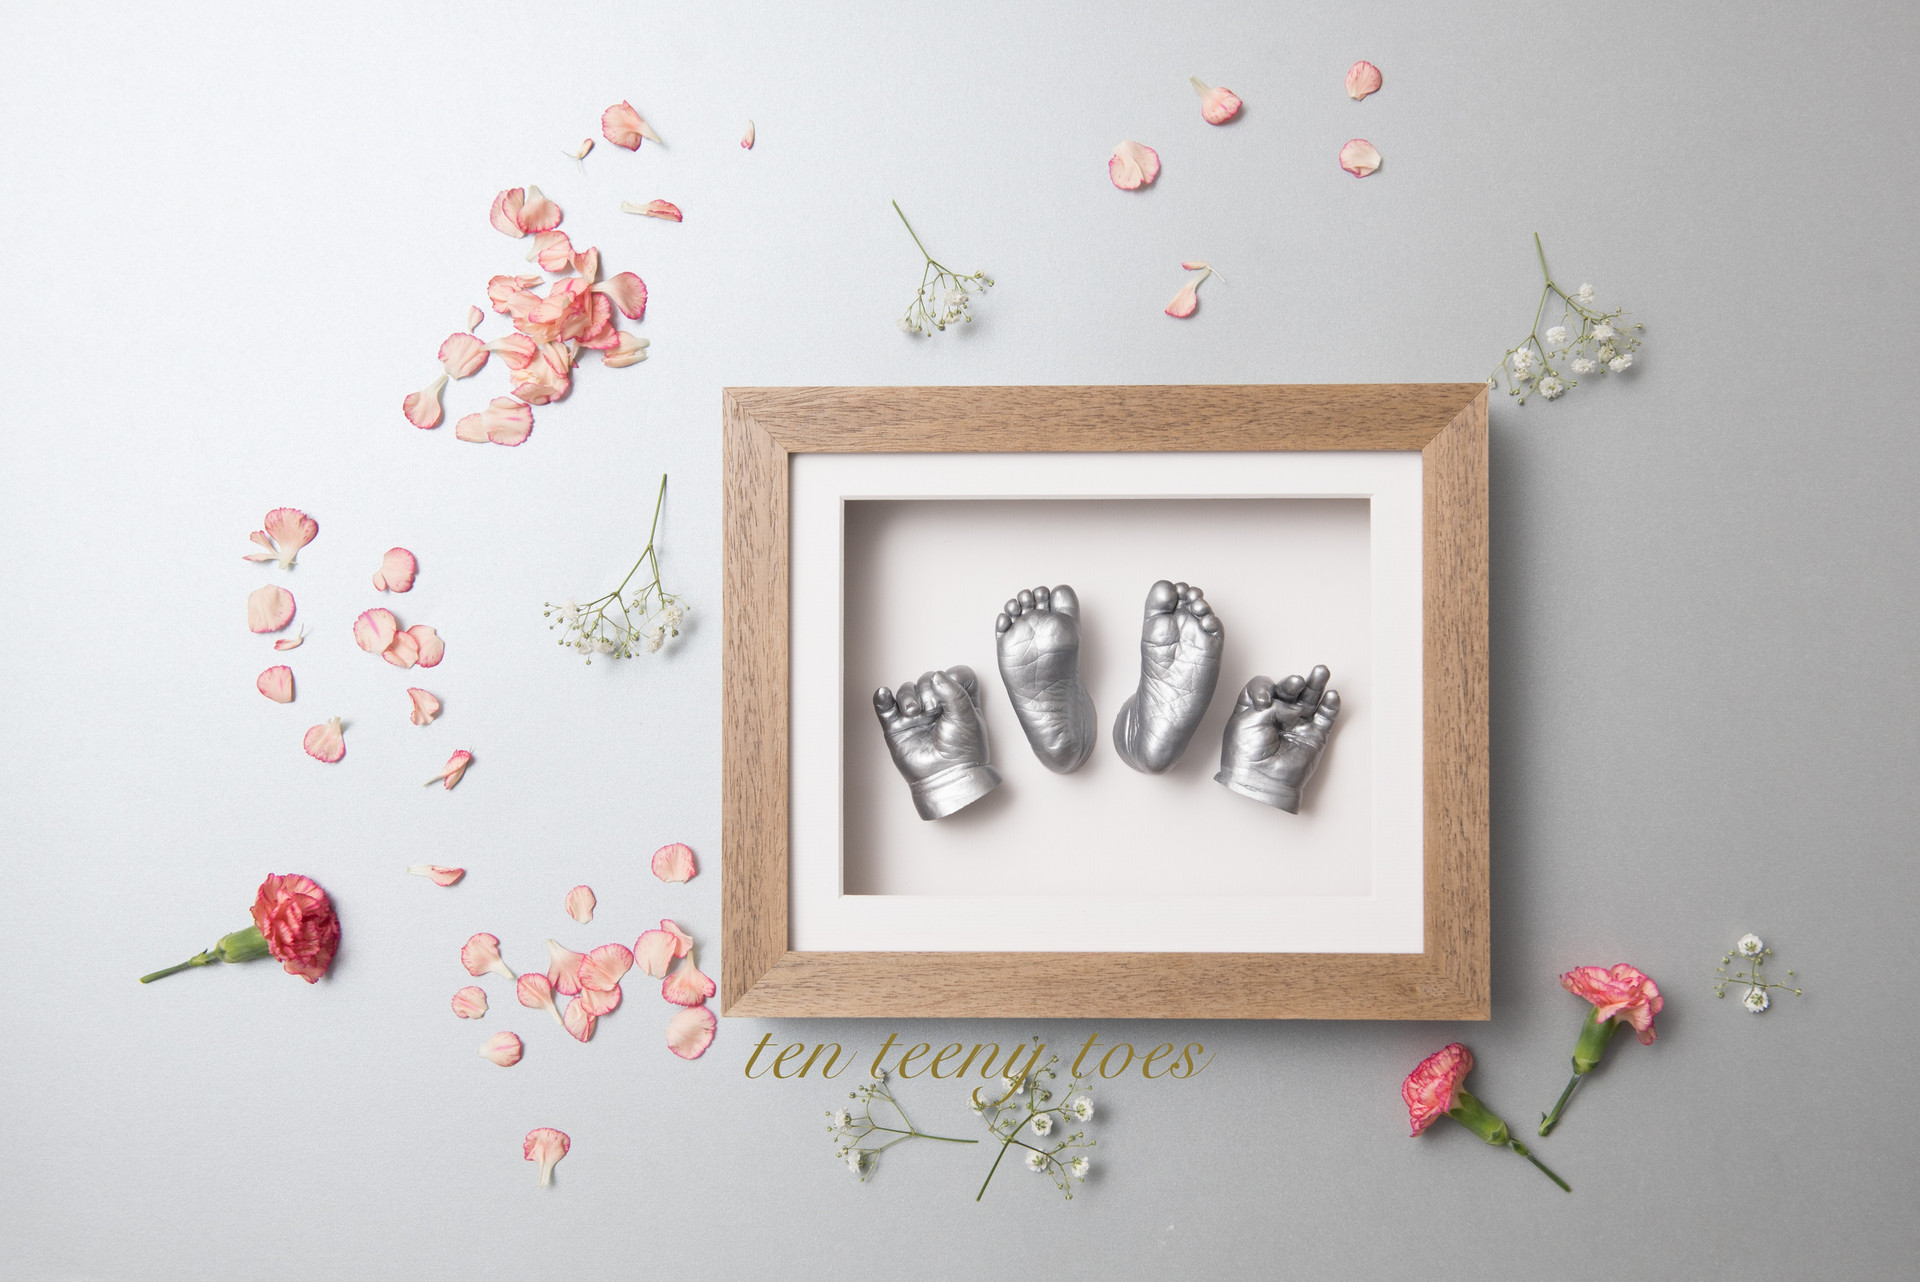 Four newborn casts in a contemporary natural frame.